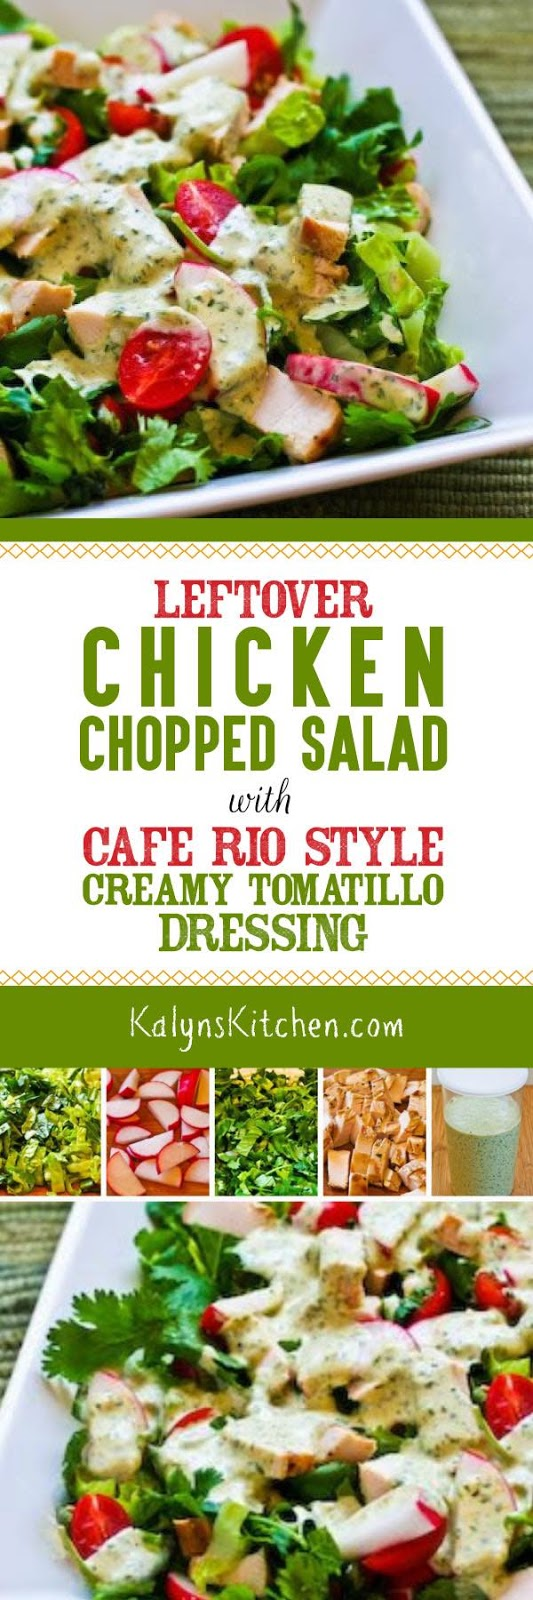 Leftover Chicken Chopped Salad with Cafe Rio Style Creamy ...